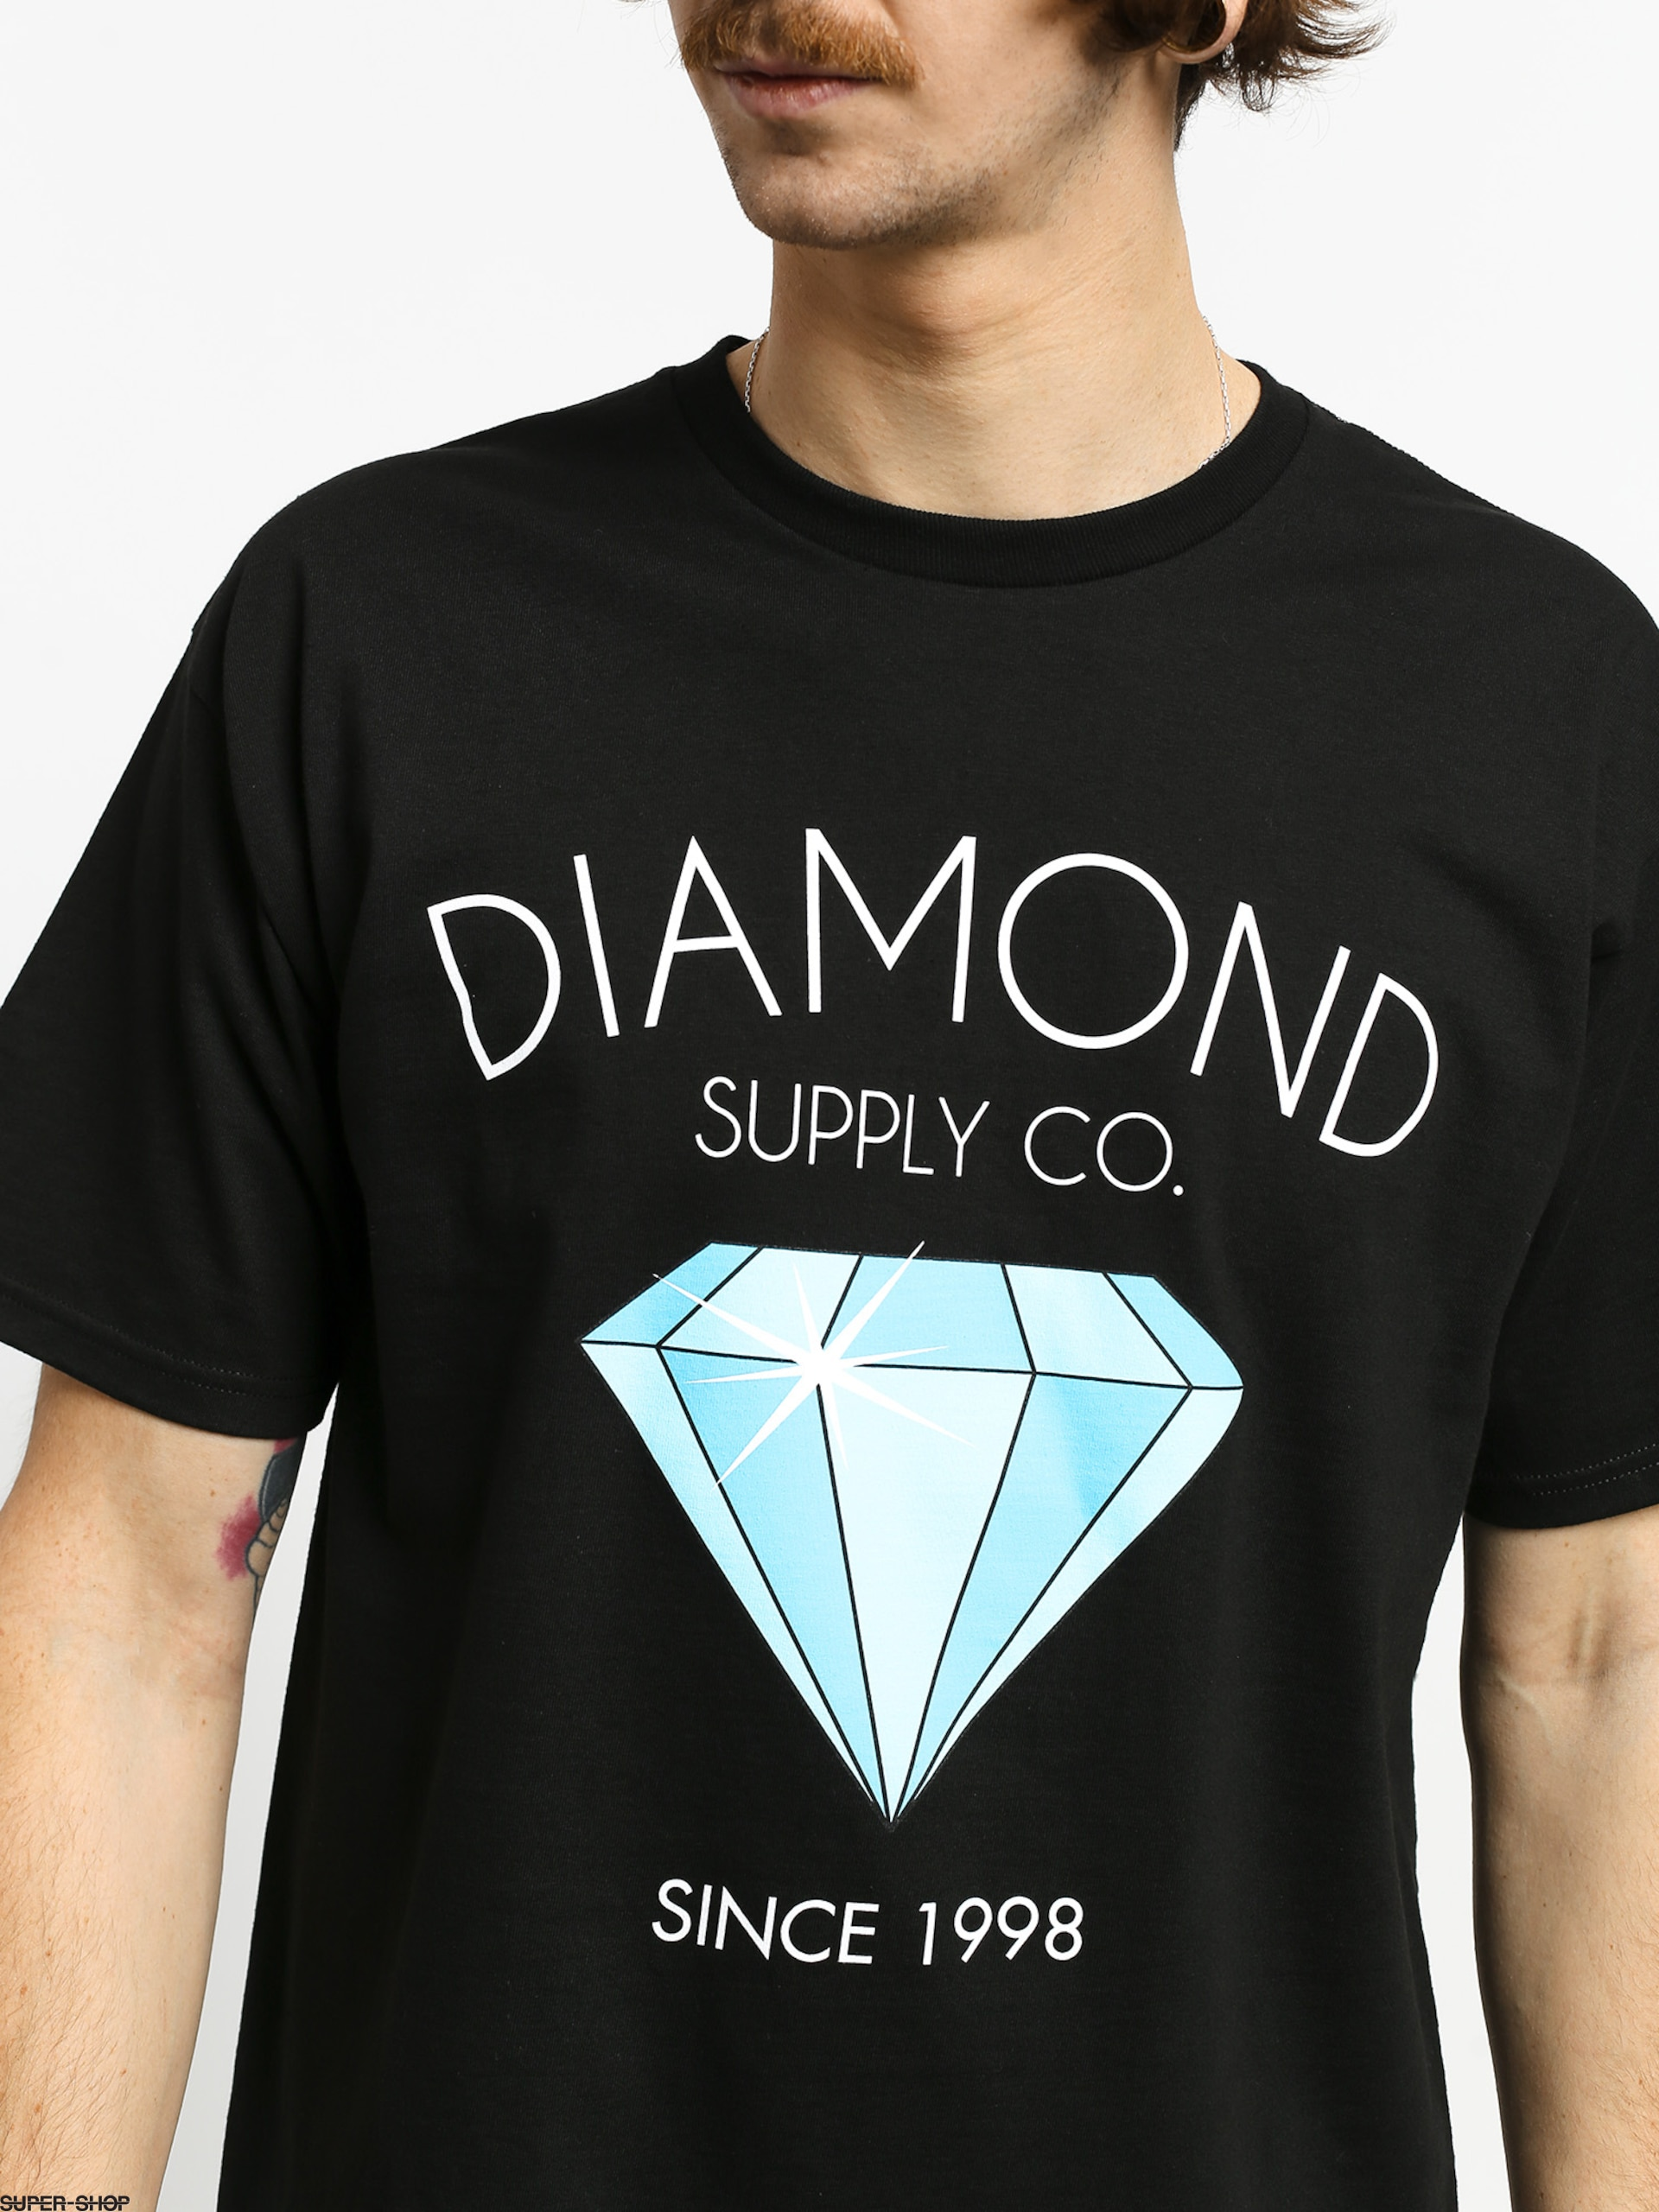 BLACK BOXED CUAND T SHIRT MUSCLE TANK TOP NEW RDAM-65 DIAMOND SUPPLY CO